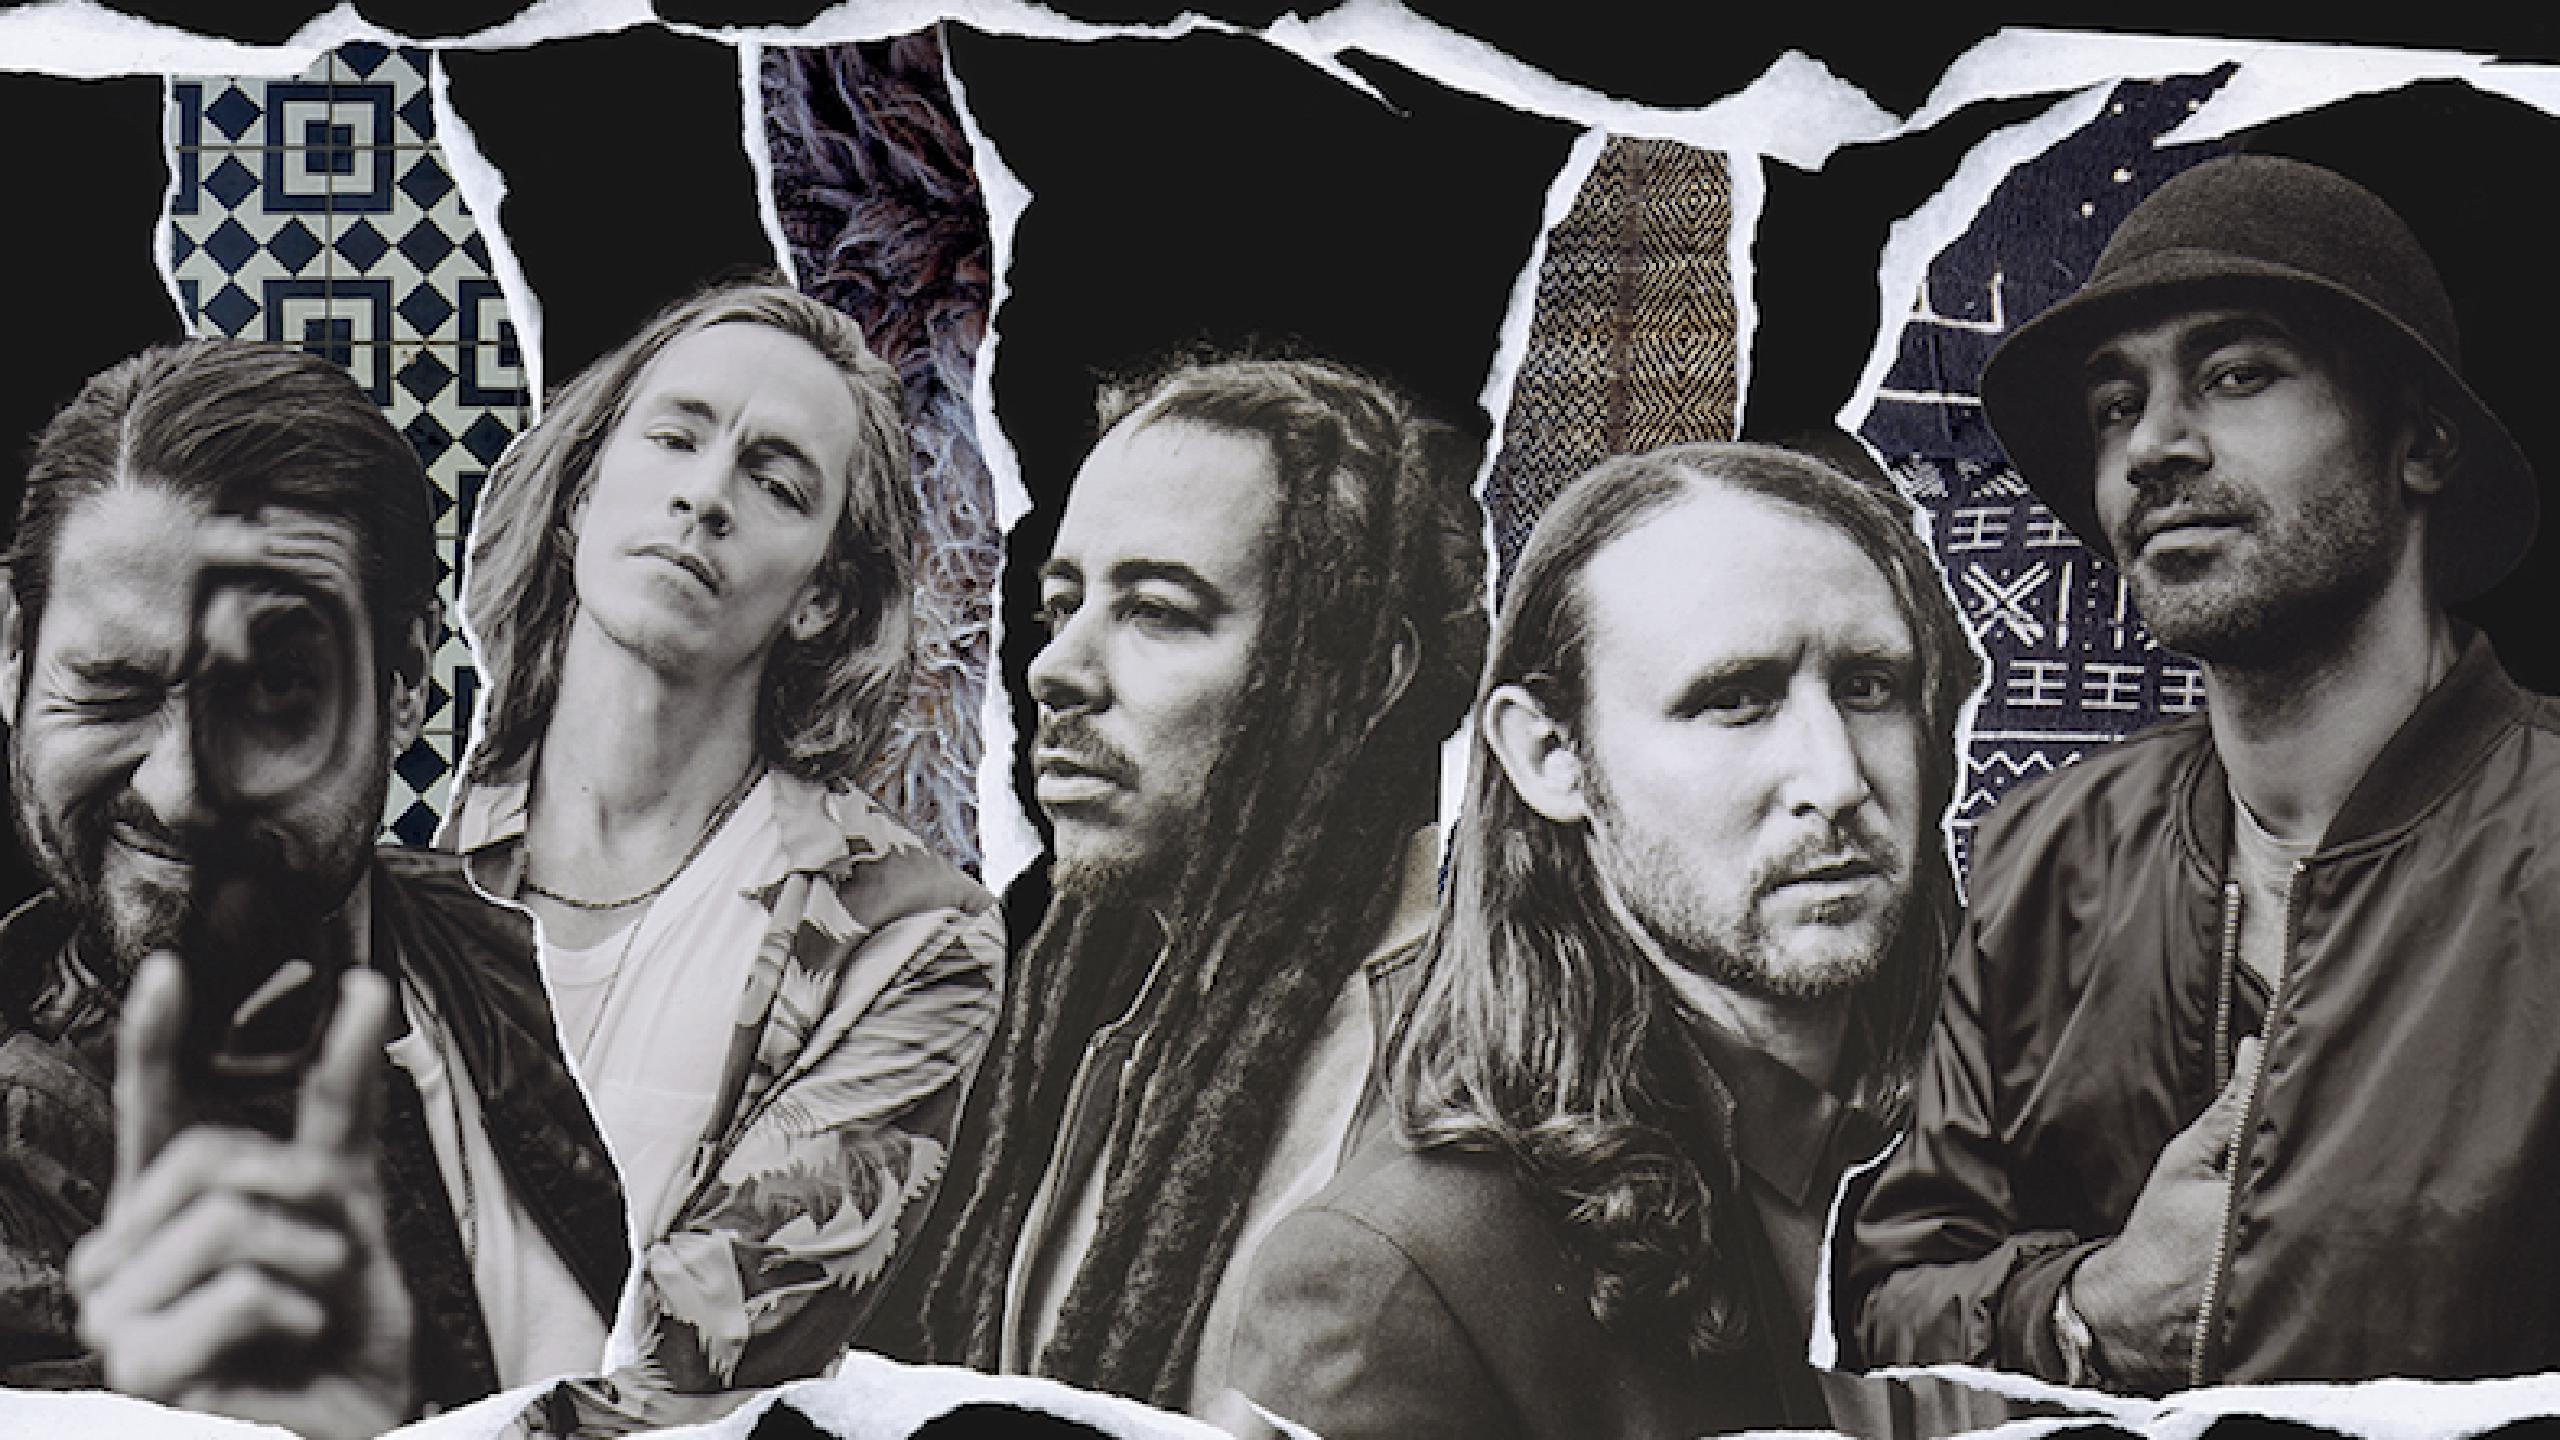 Incubus Tour 2020 Incubus tour dates 2019 2020. Incubus tickets and concerts | Wegow